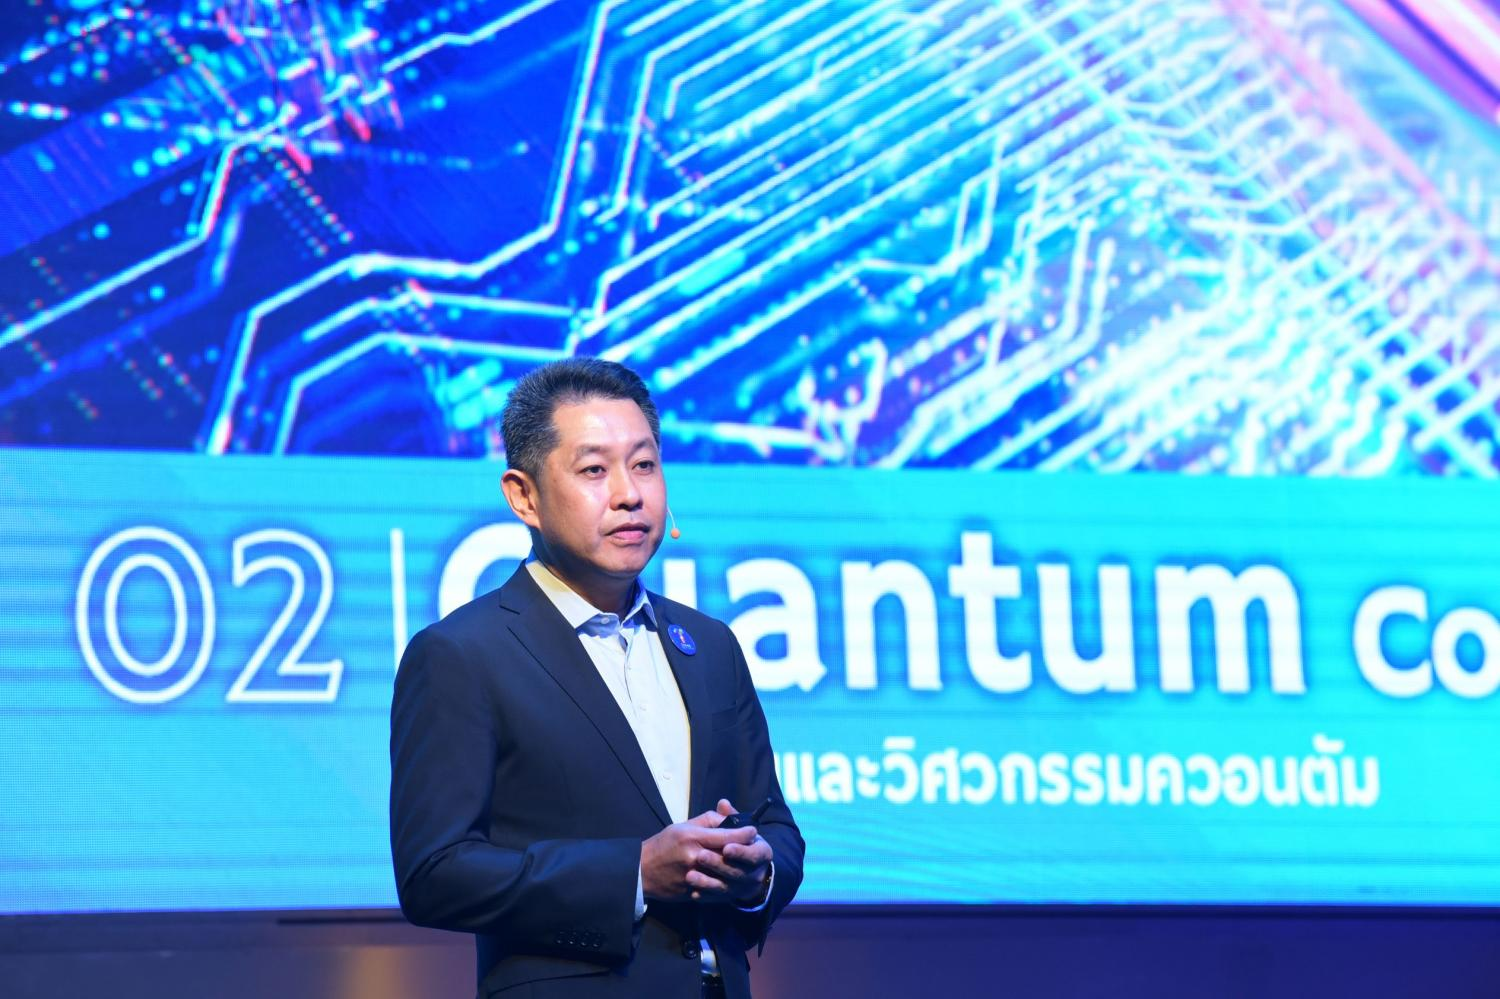 Narong Sirilertworakul, president of the NSTDA, says the advancement of science and tech will improve people's lives and reduce social inequality.